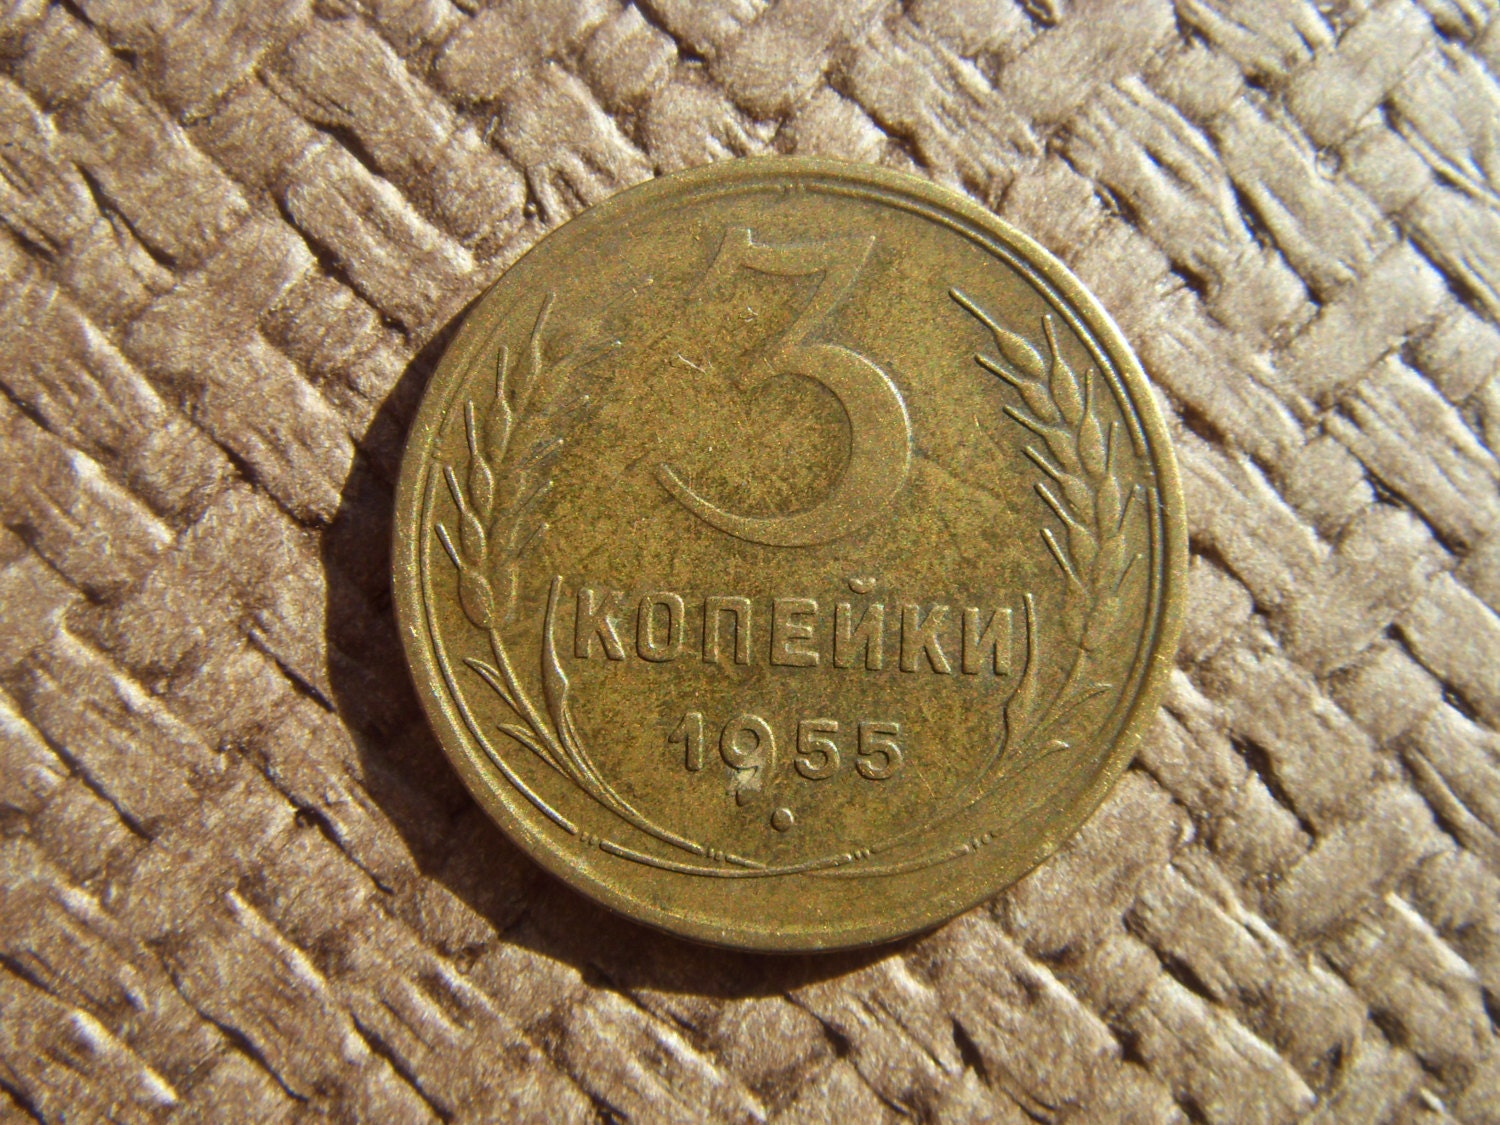 Vintage Soviet Coin 3 Kopecks of 1955 - Astra9